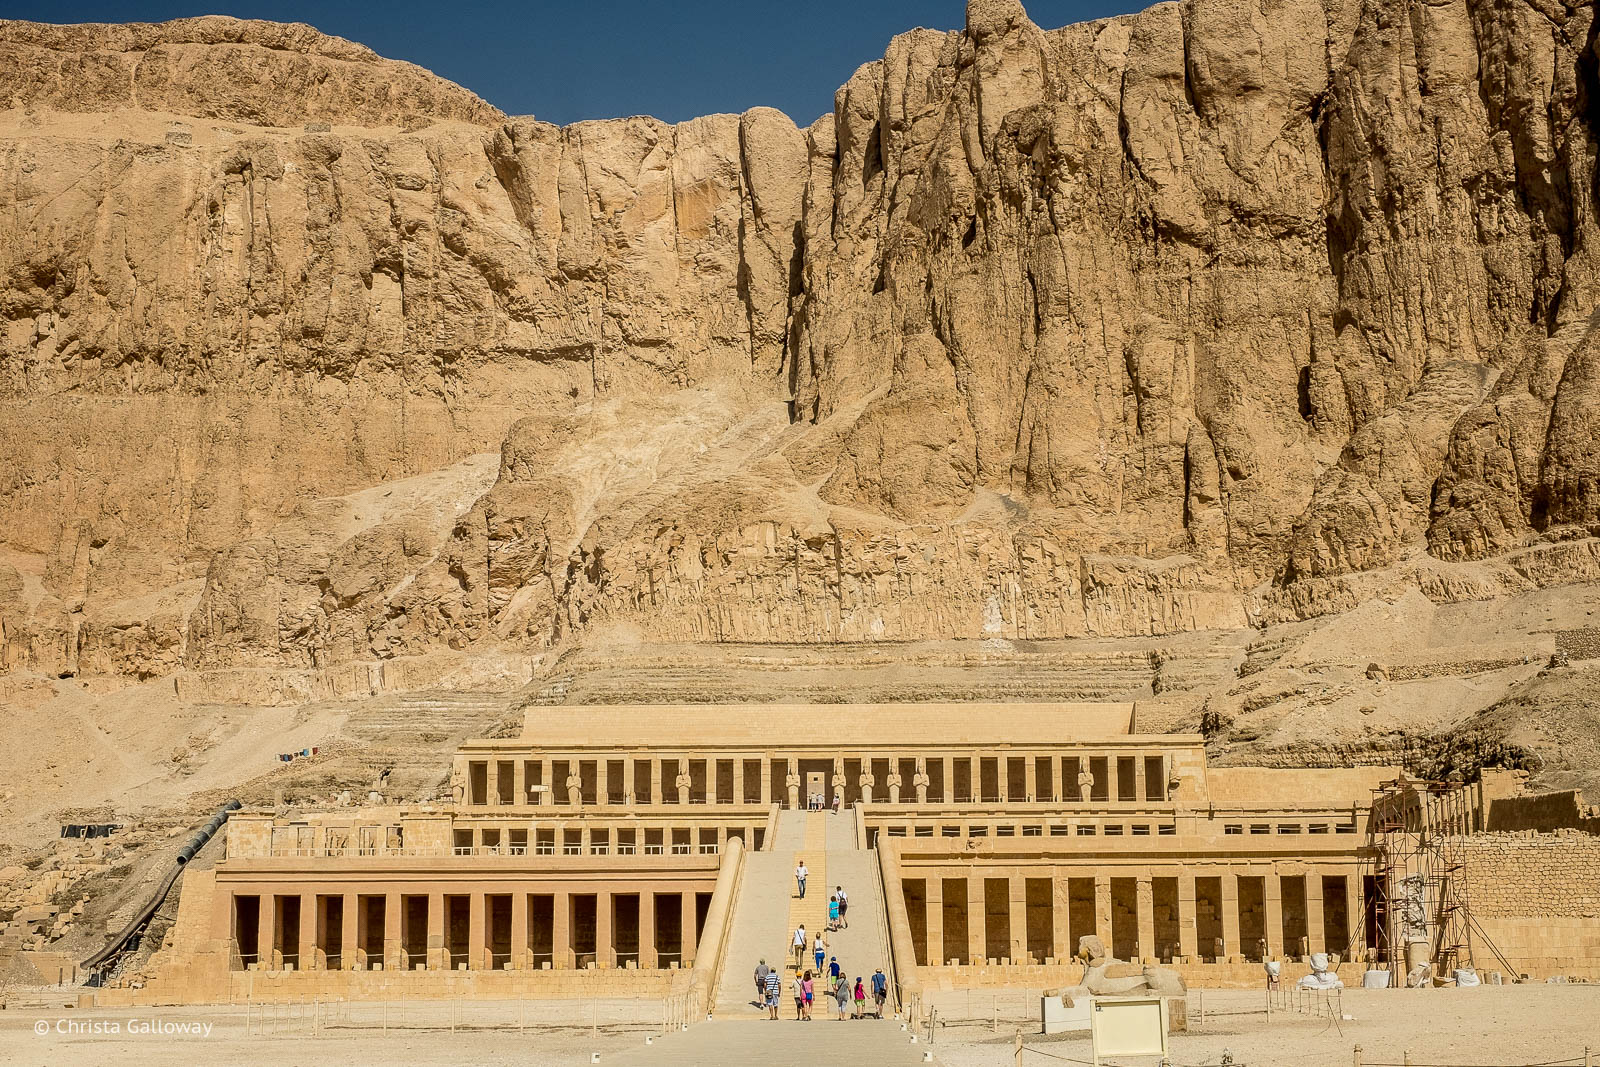 The Mortuary Temple of Hatshepsut near the ancient city of Thebes in Egypt.